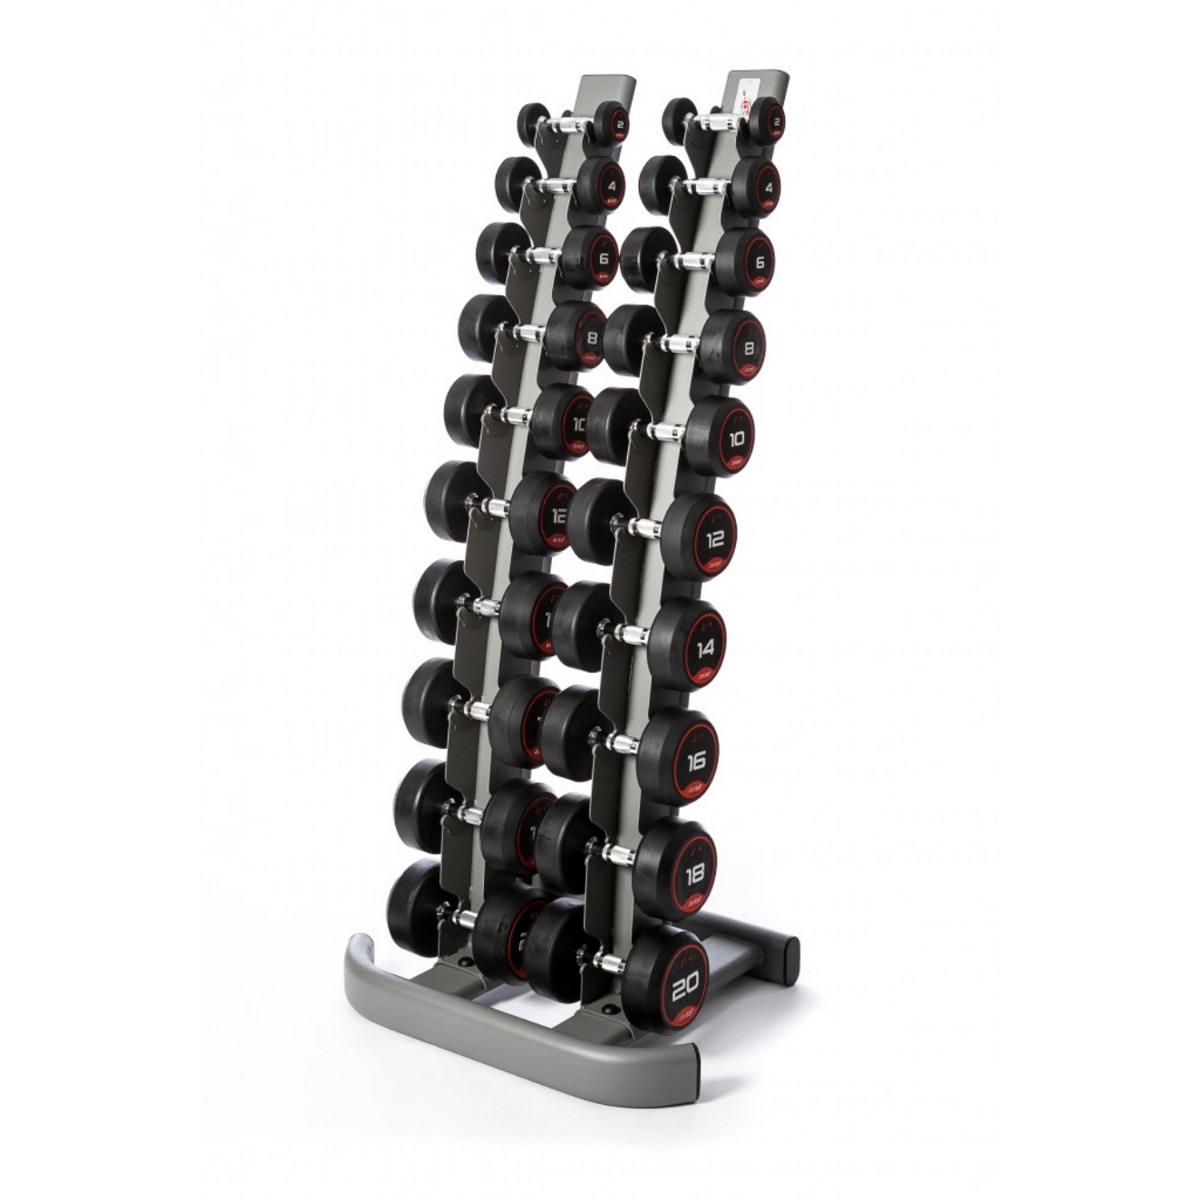 Jordan Rubber Dumbbell Set 2.5-25kg & Rack